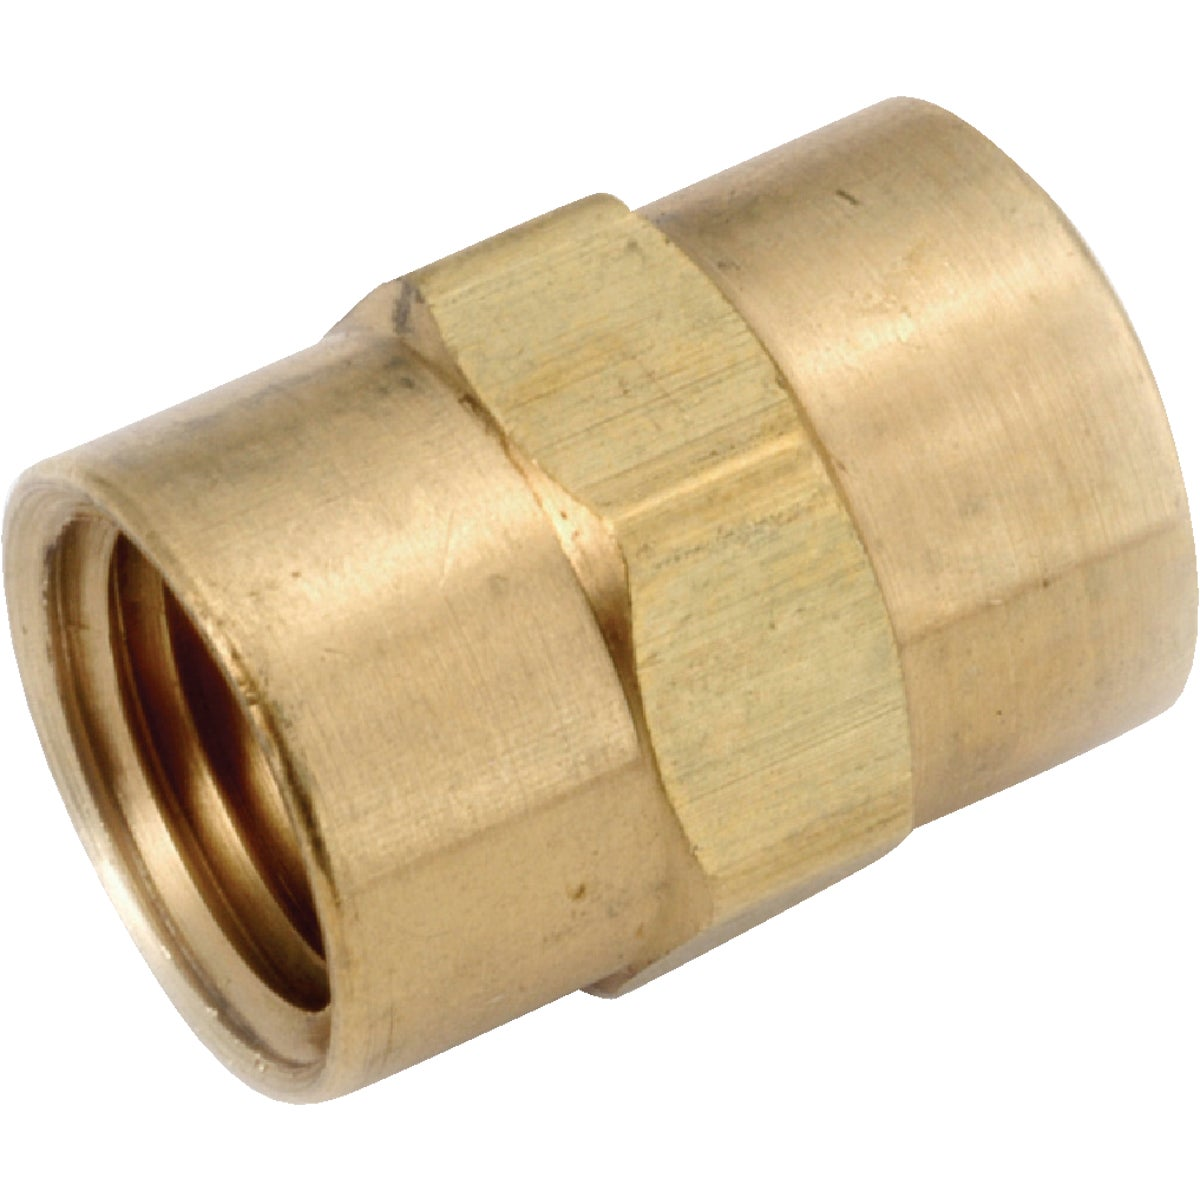 1/2 COUPLING YLW BRASS - 756103-08 by Anderson Metals Corp